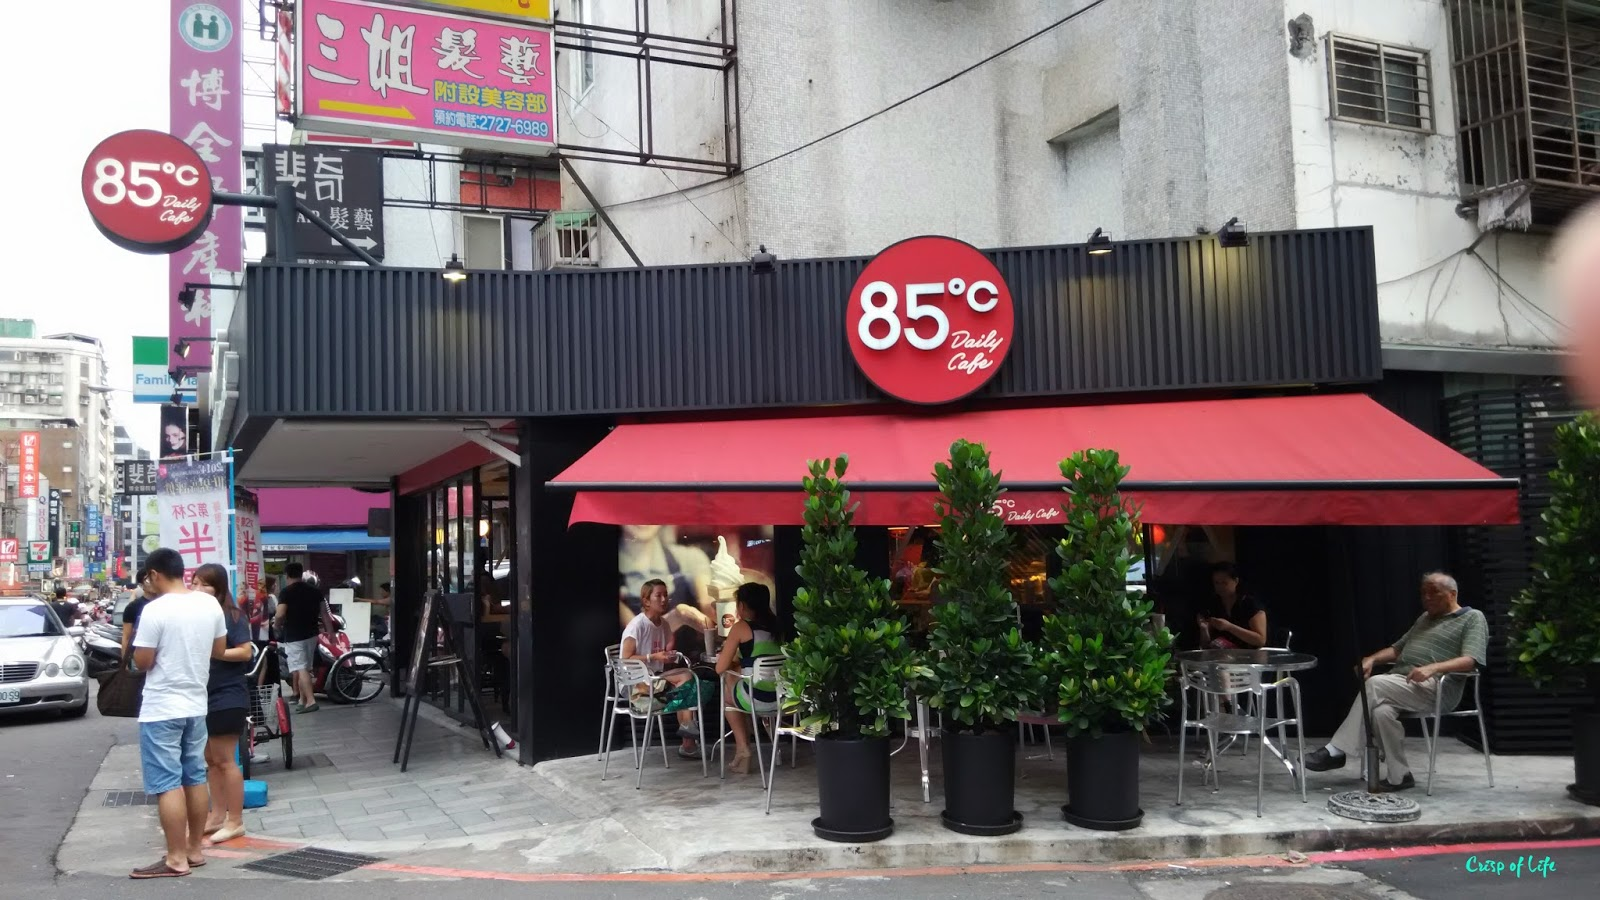 [TAIPEI 台北] Day 9: Yi mian noodles, 85 Degree Cafe 归绥街意面王, 85 度 C 咖啡蛋糕烘焙專賣店